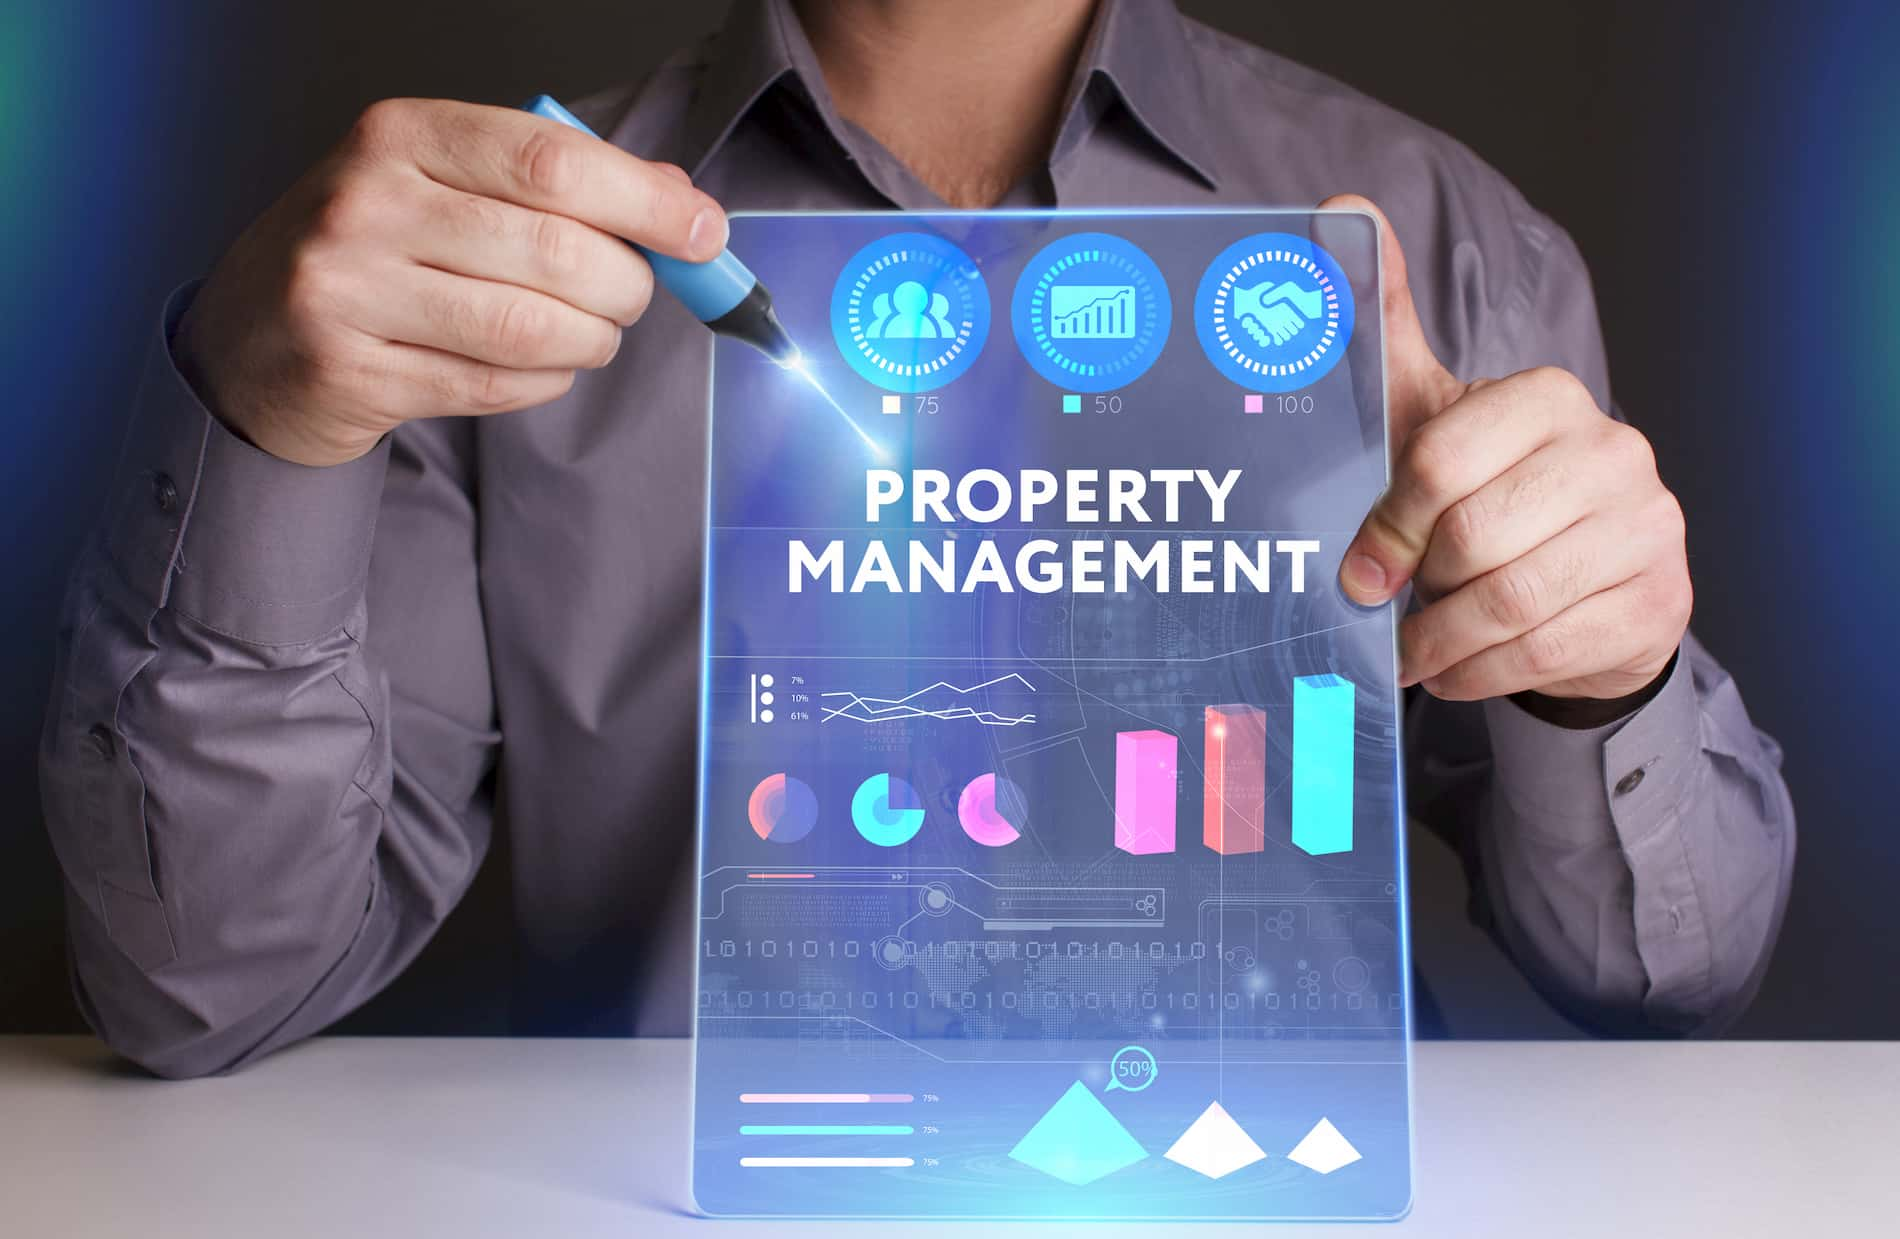 Property-management-immobili